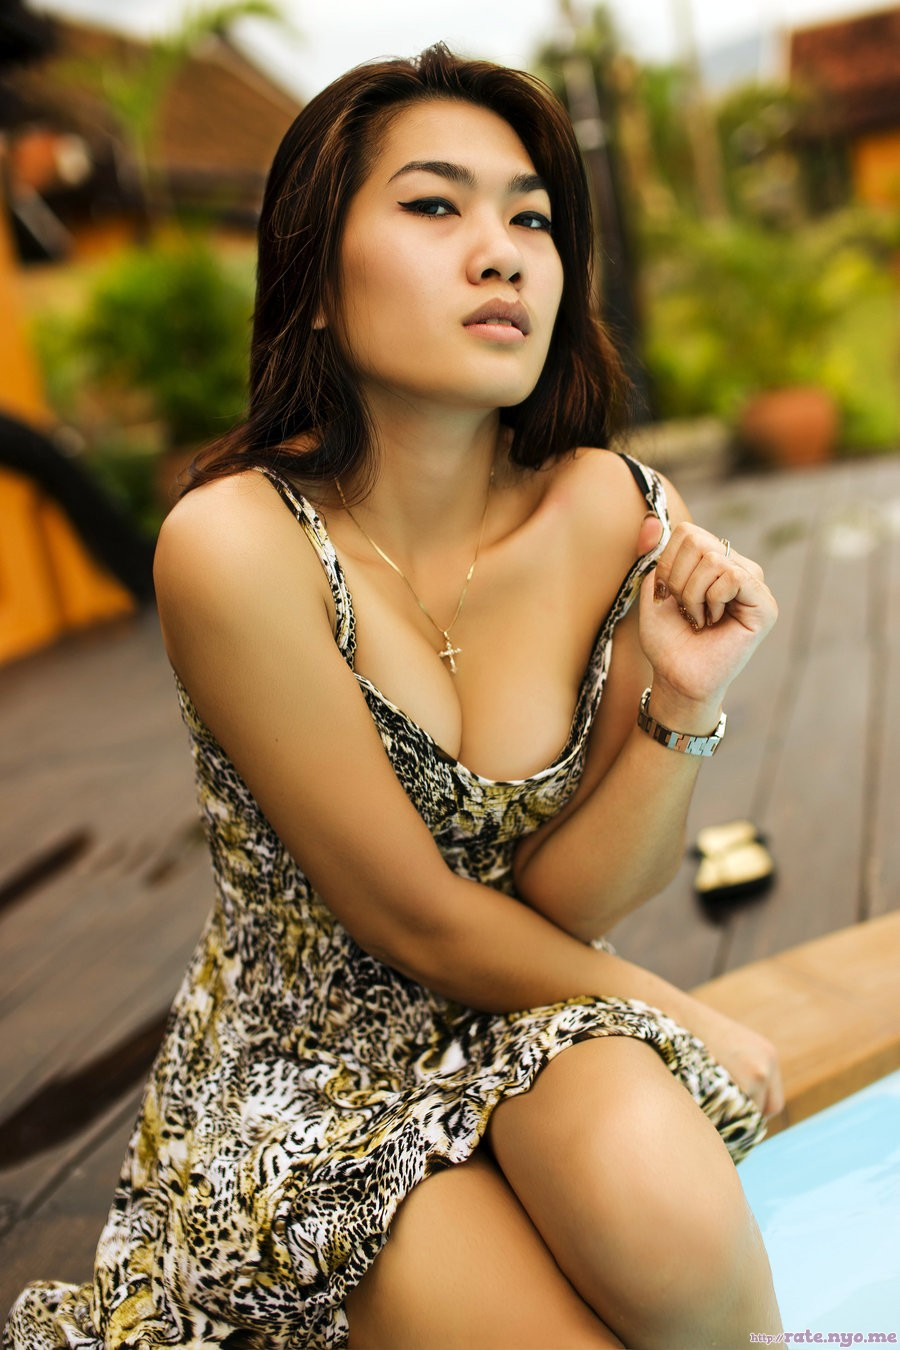 breasts cleavage dress filipina legs shoulders sitting